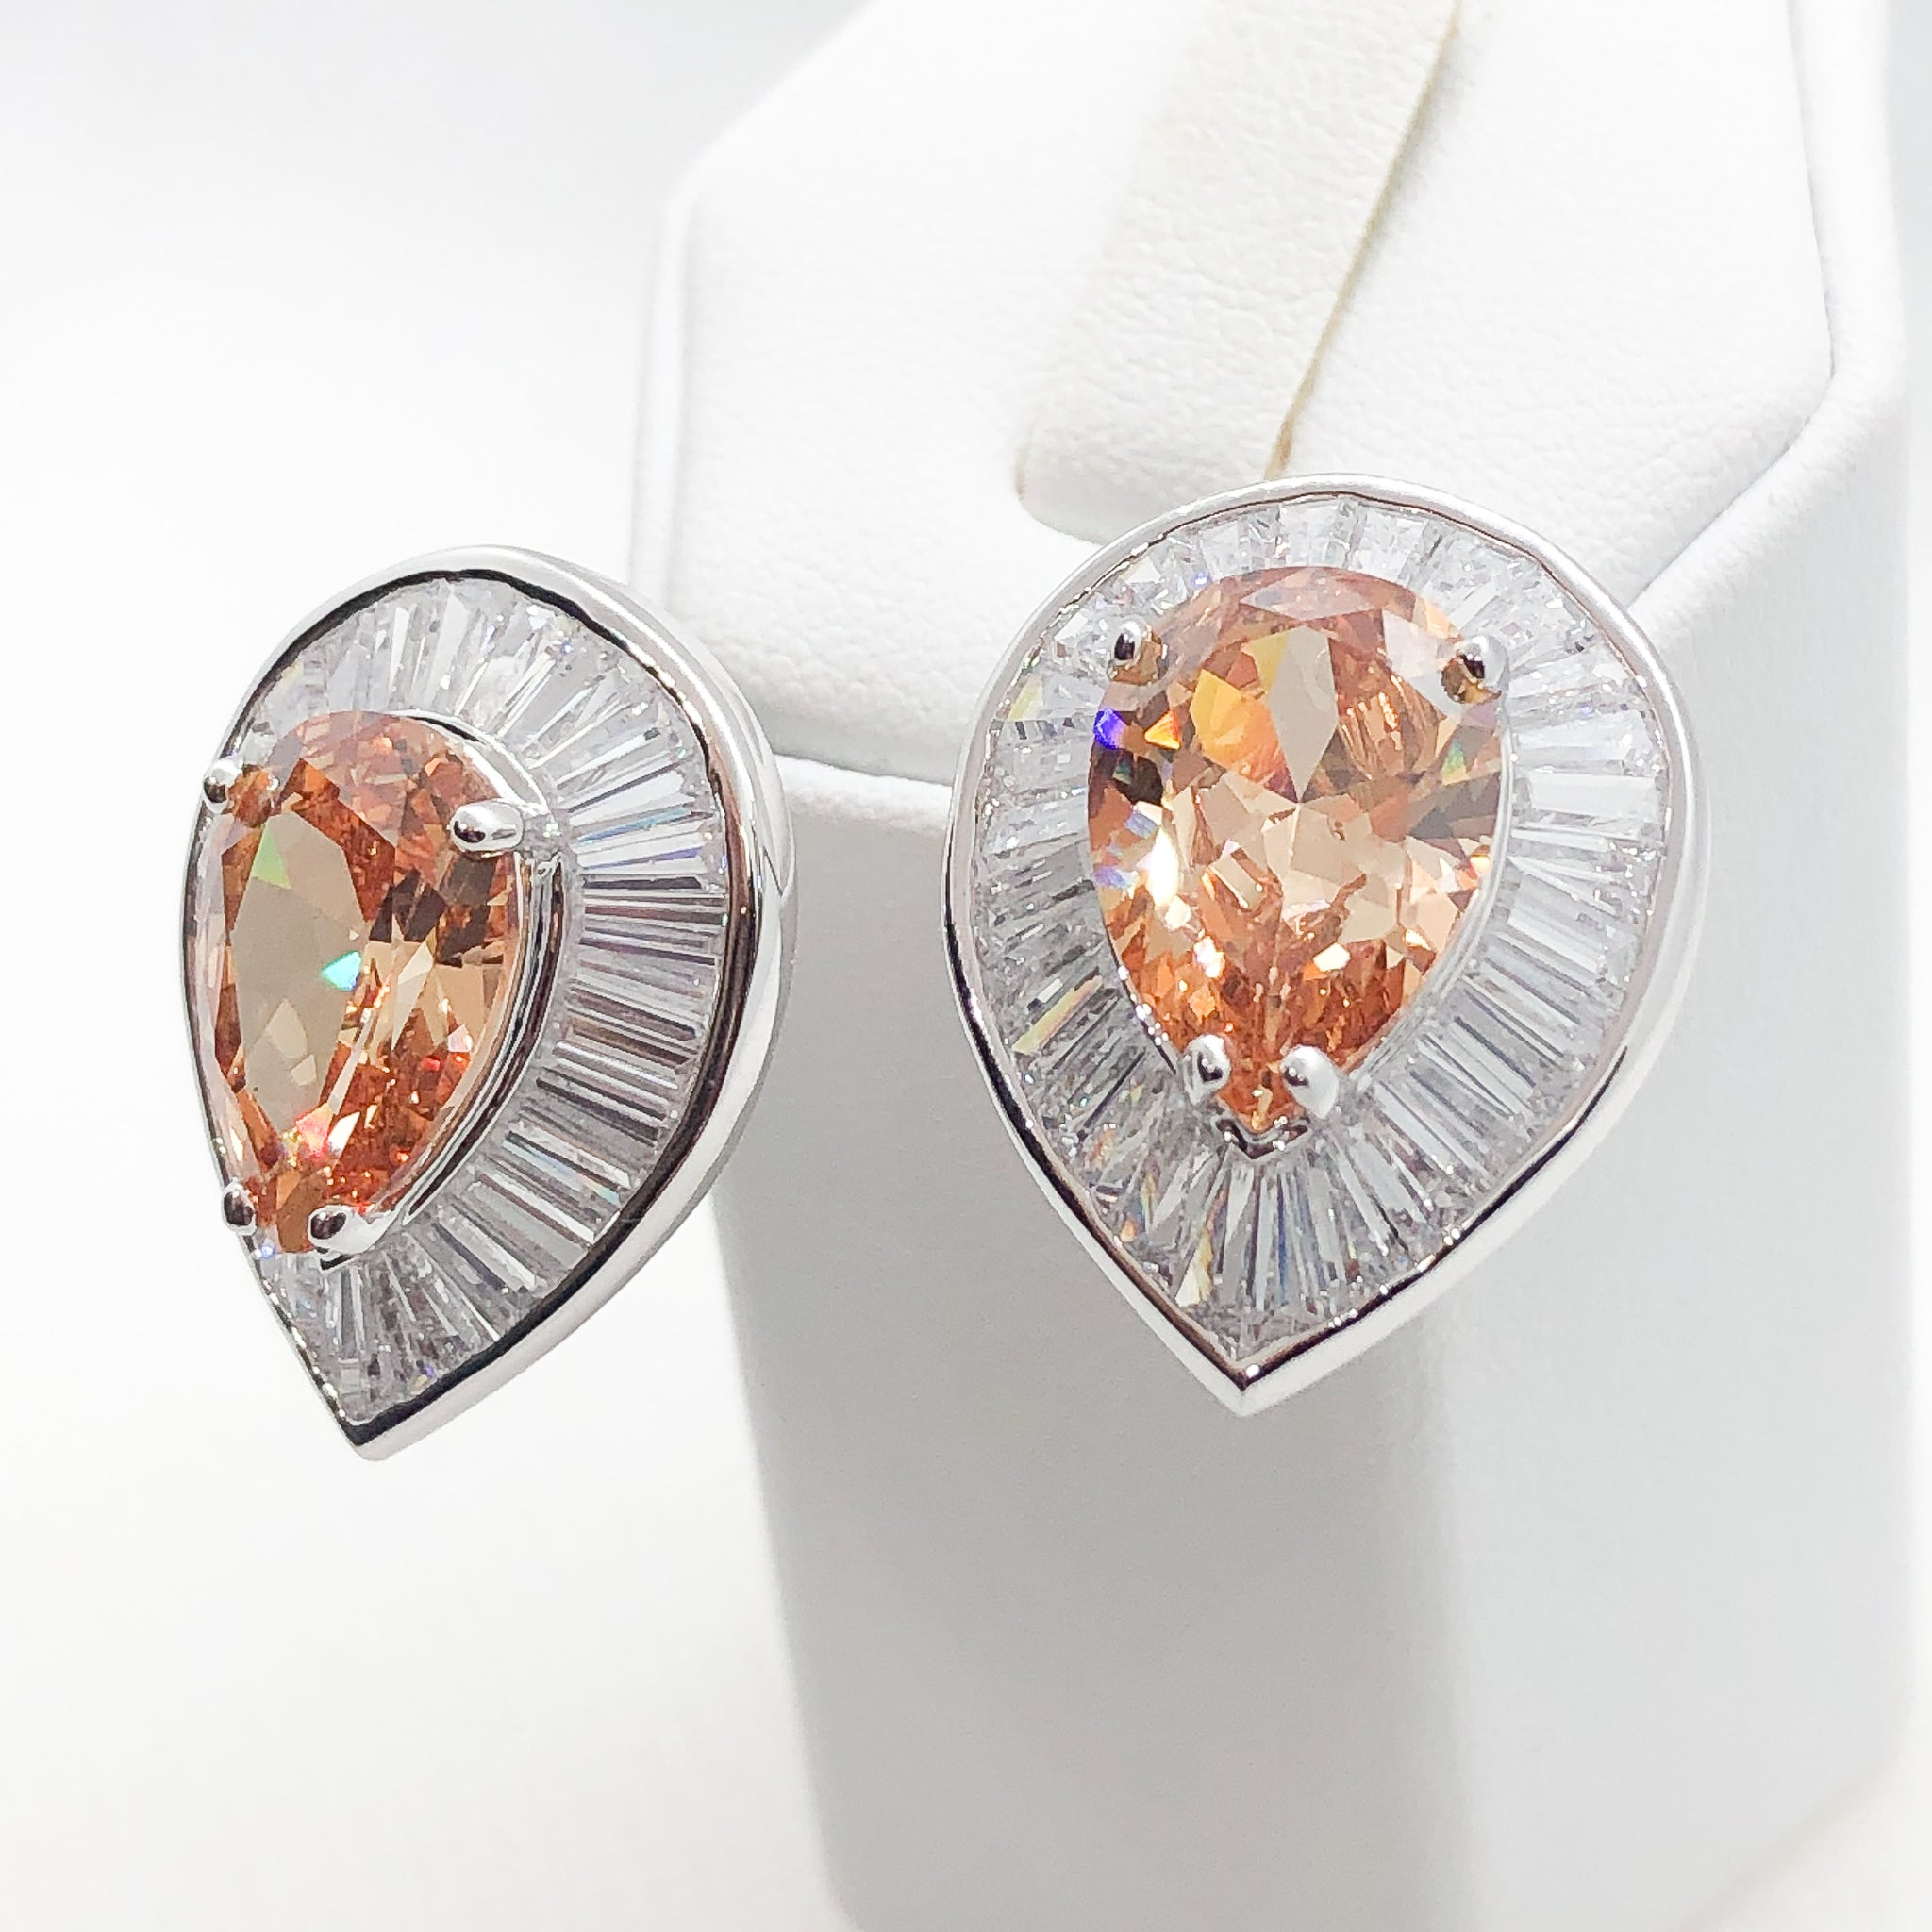 ID: E1303A Women Jewelry 18K White Gold GF Big Orange Crystal with Clear Round Stones Earrings Fashion Lady Drop Stud